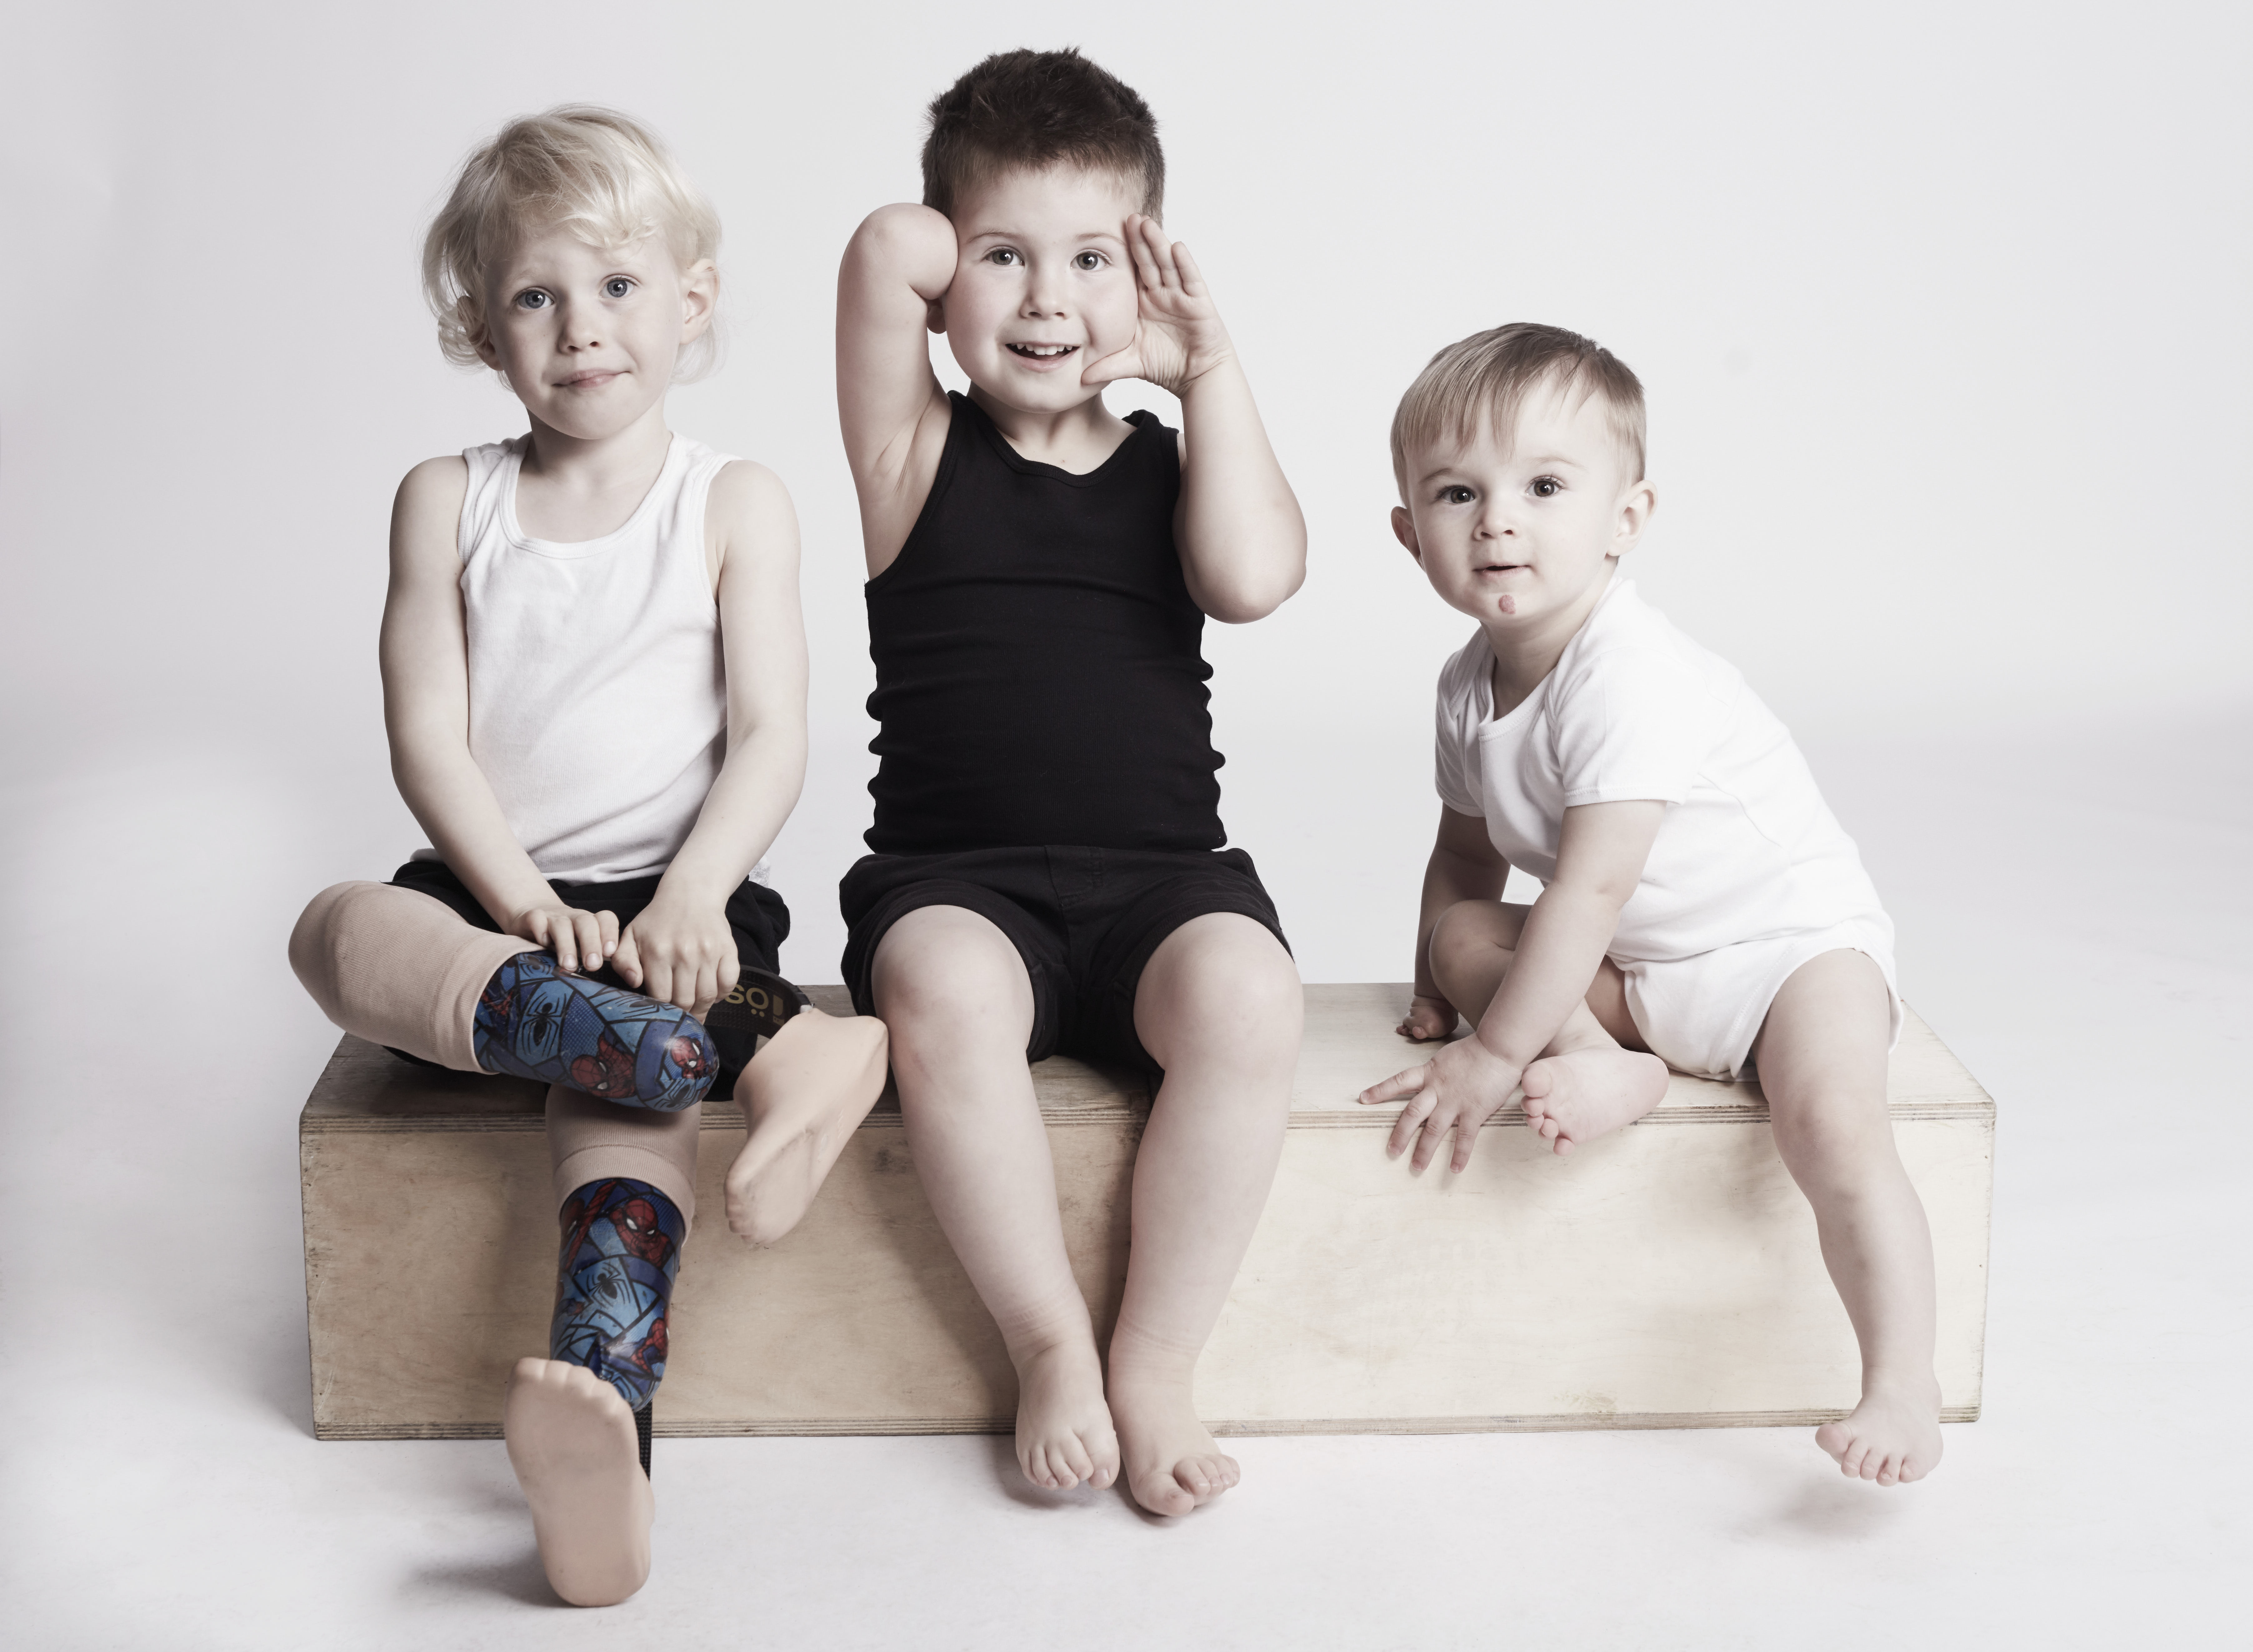 Children with limb differences